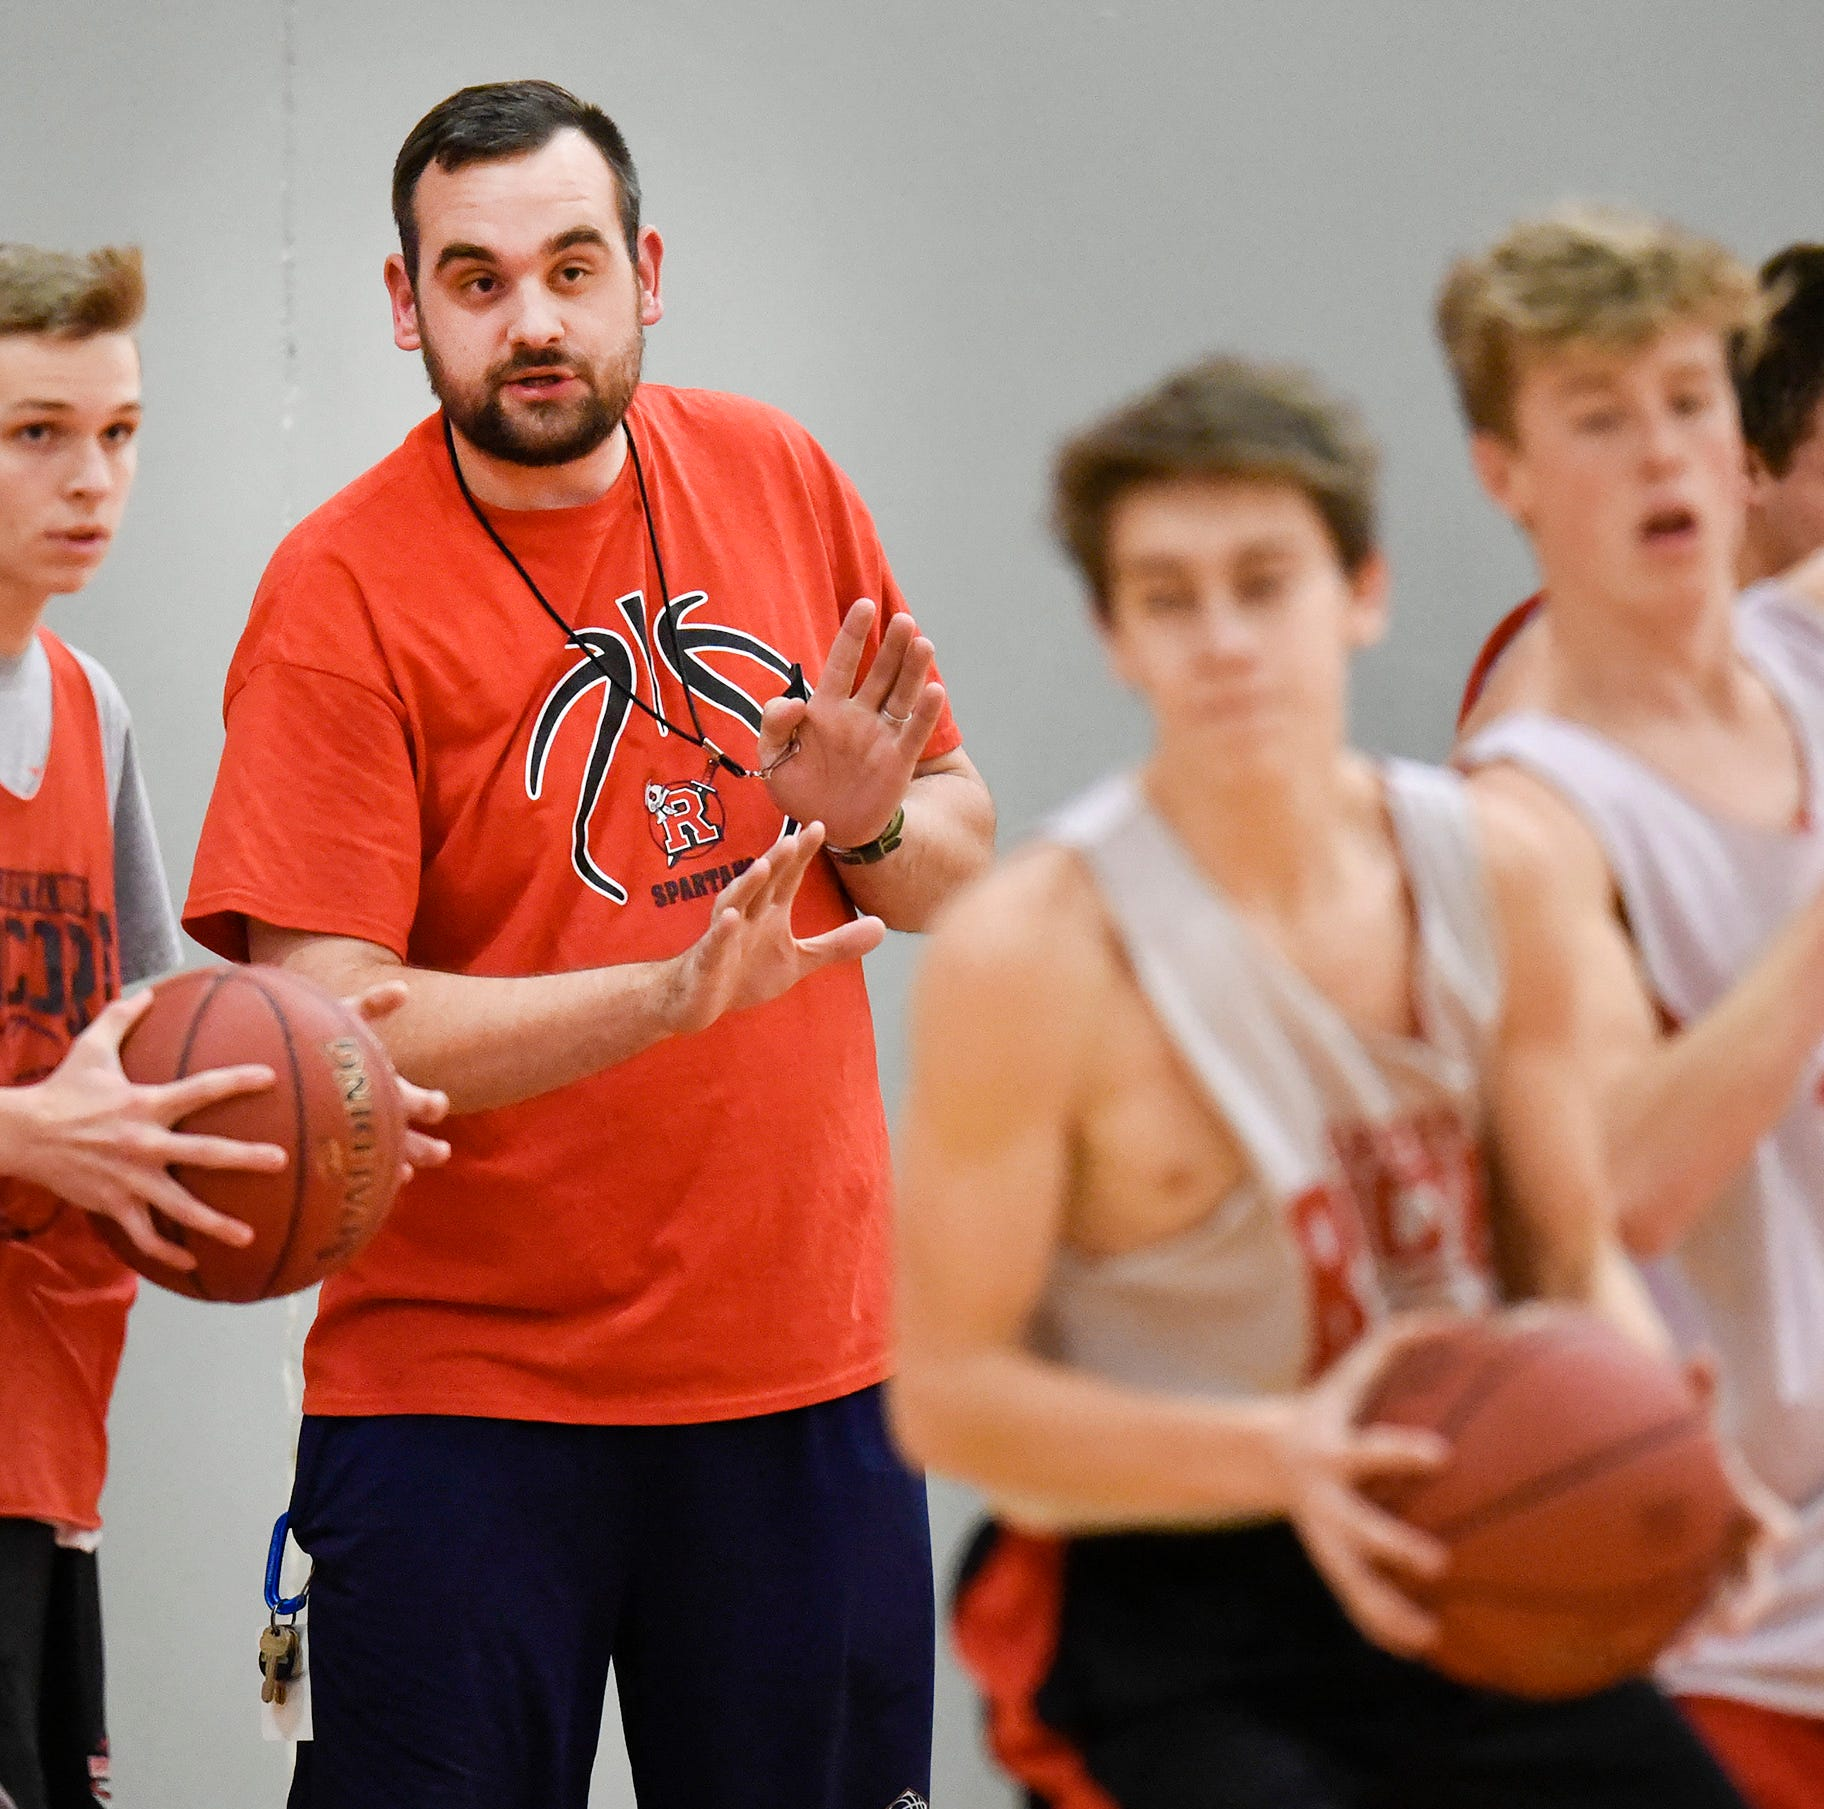 Peterson excited for opportunity to lead ROCORI boys basketball program